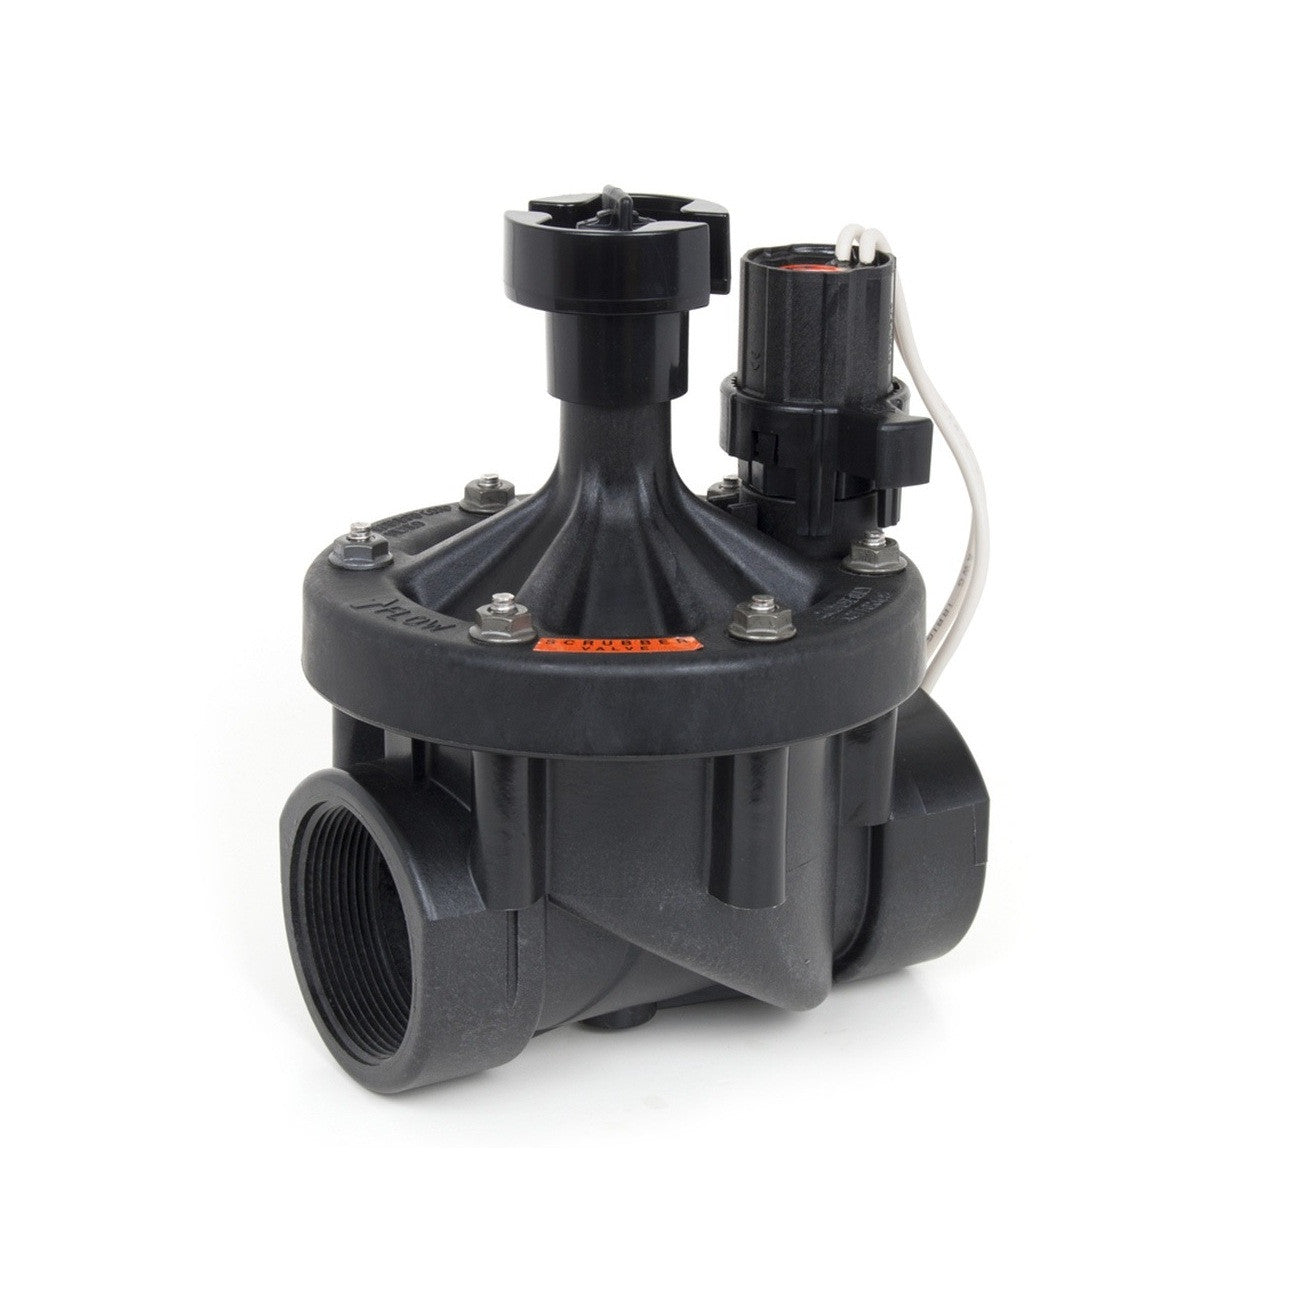 Rain Bird PESB Series Solenoid Control Valve - Smart Garden Center